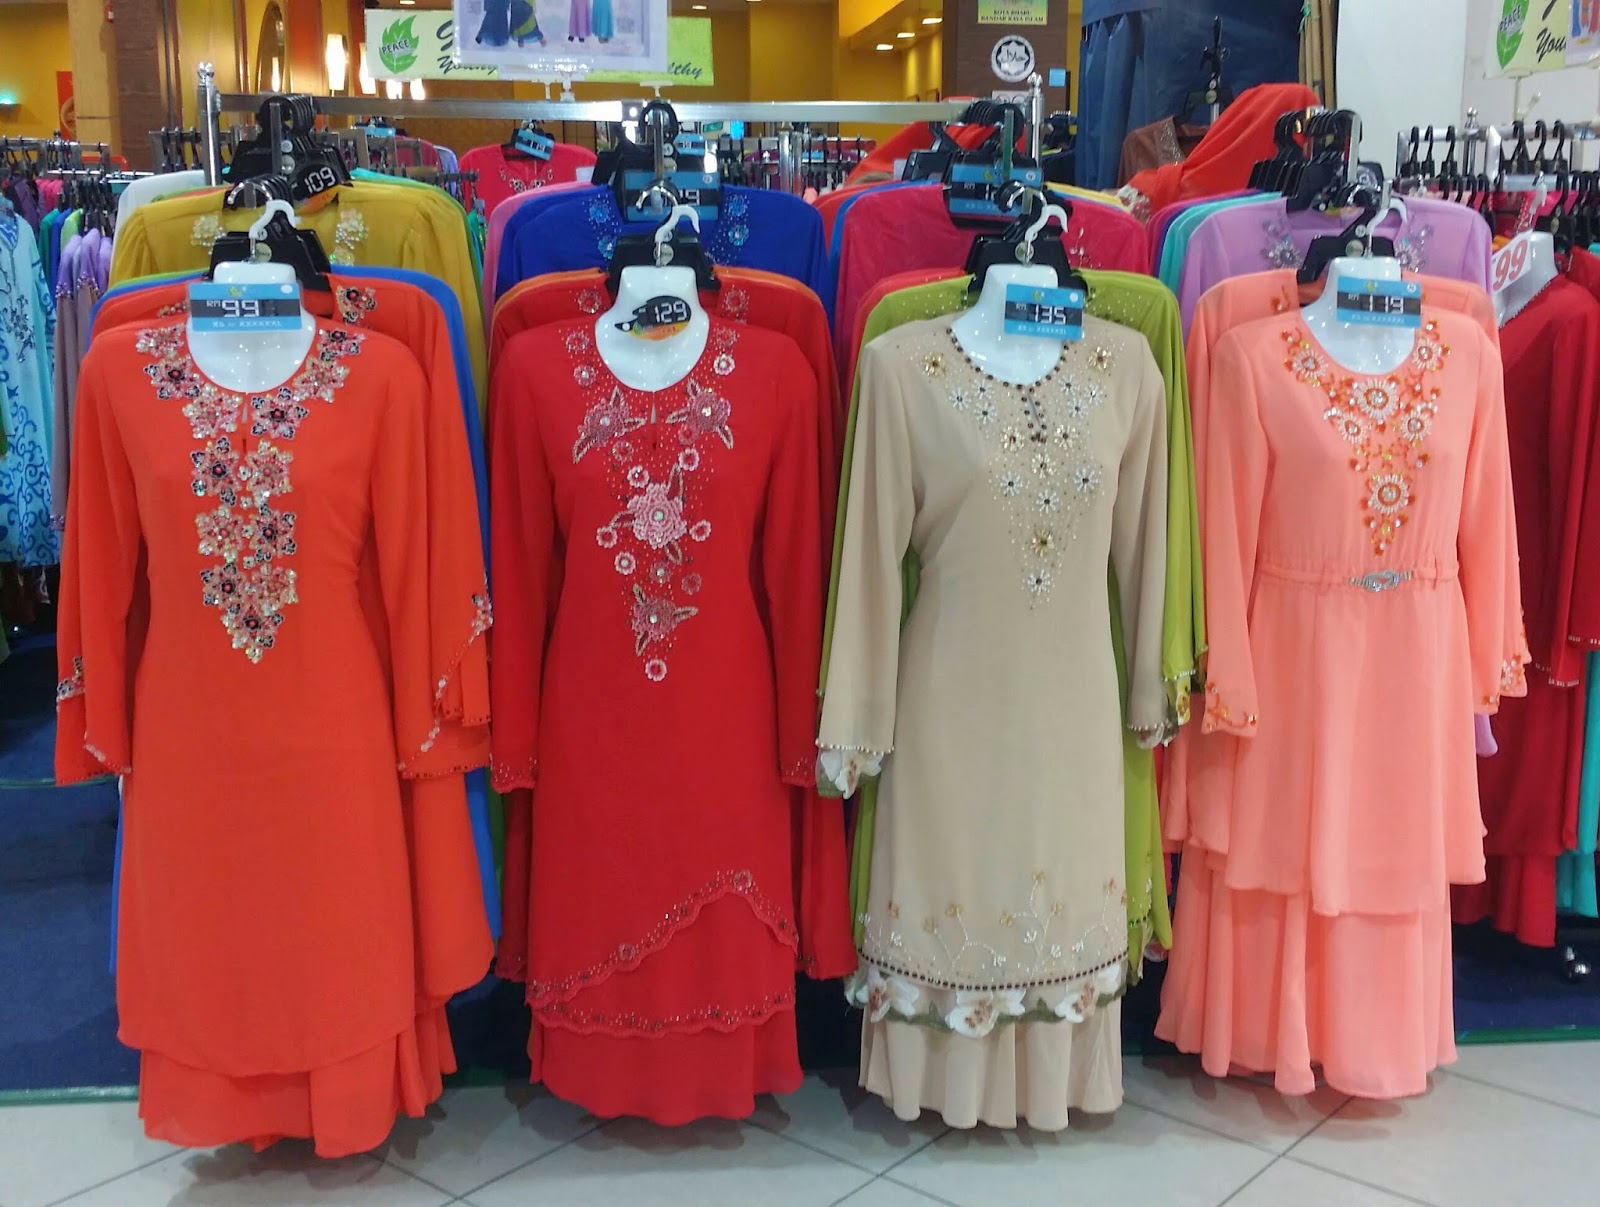 butik peace collection, peace collection di kota bharu, peace collection kbmall, baju kurung 2014, baju raya 2014, BAJU KURUNG MODEN 2014,